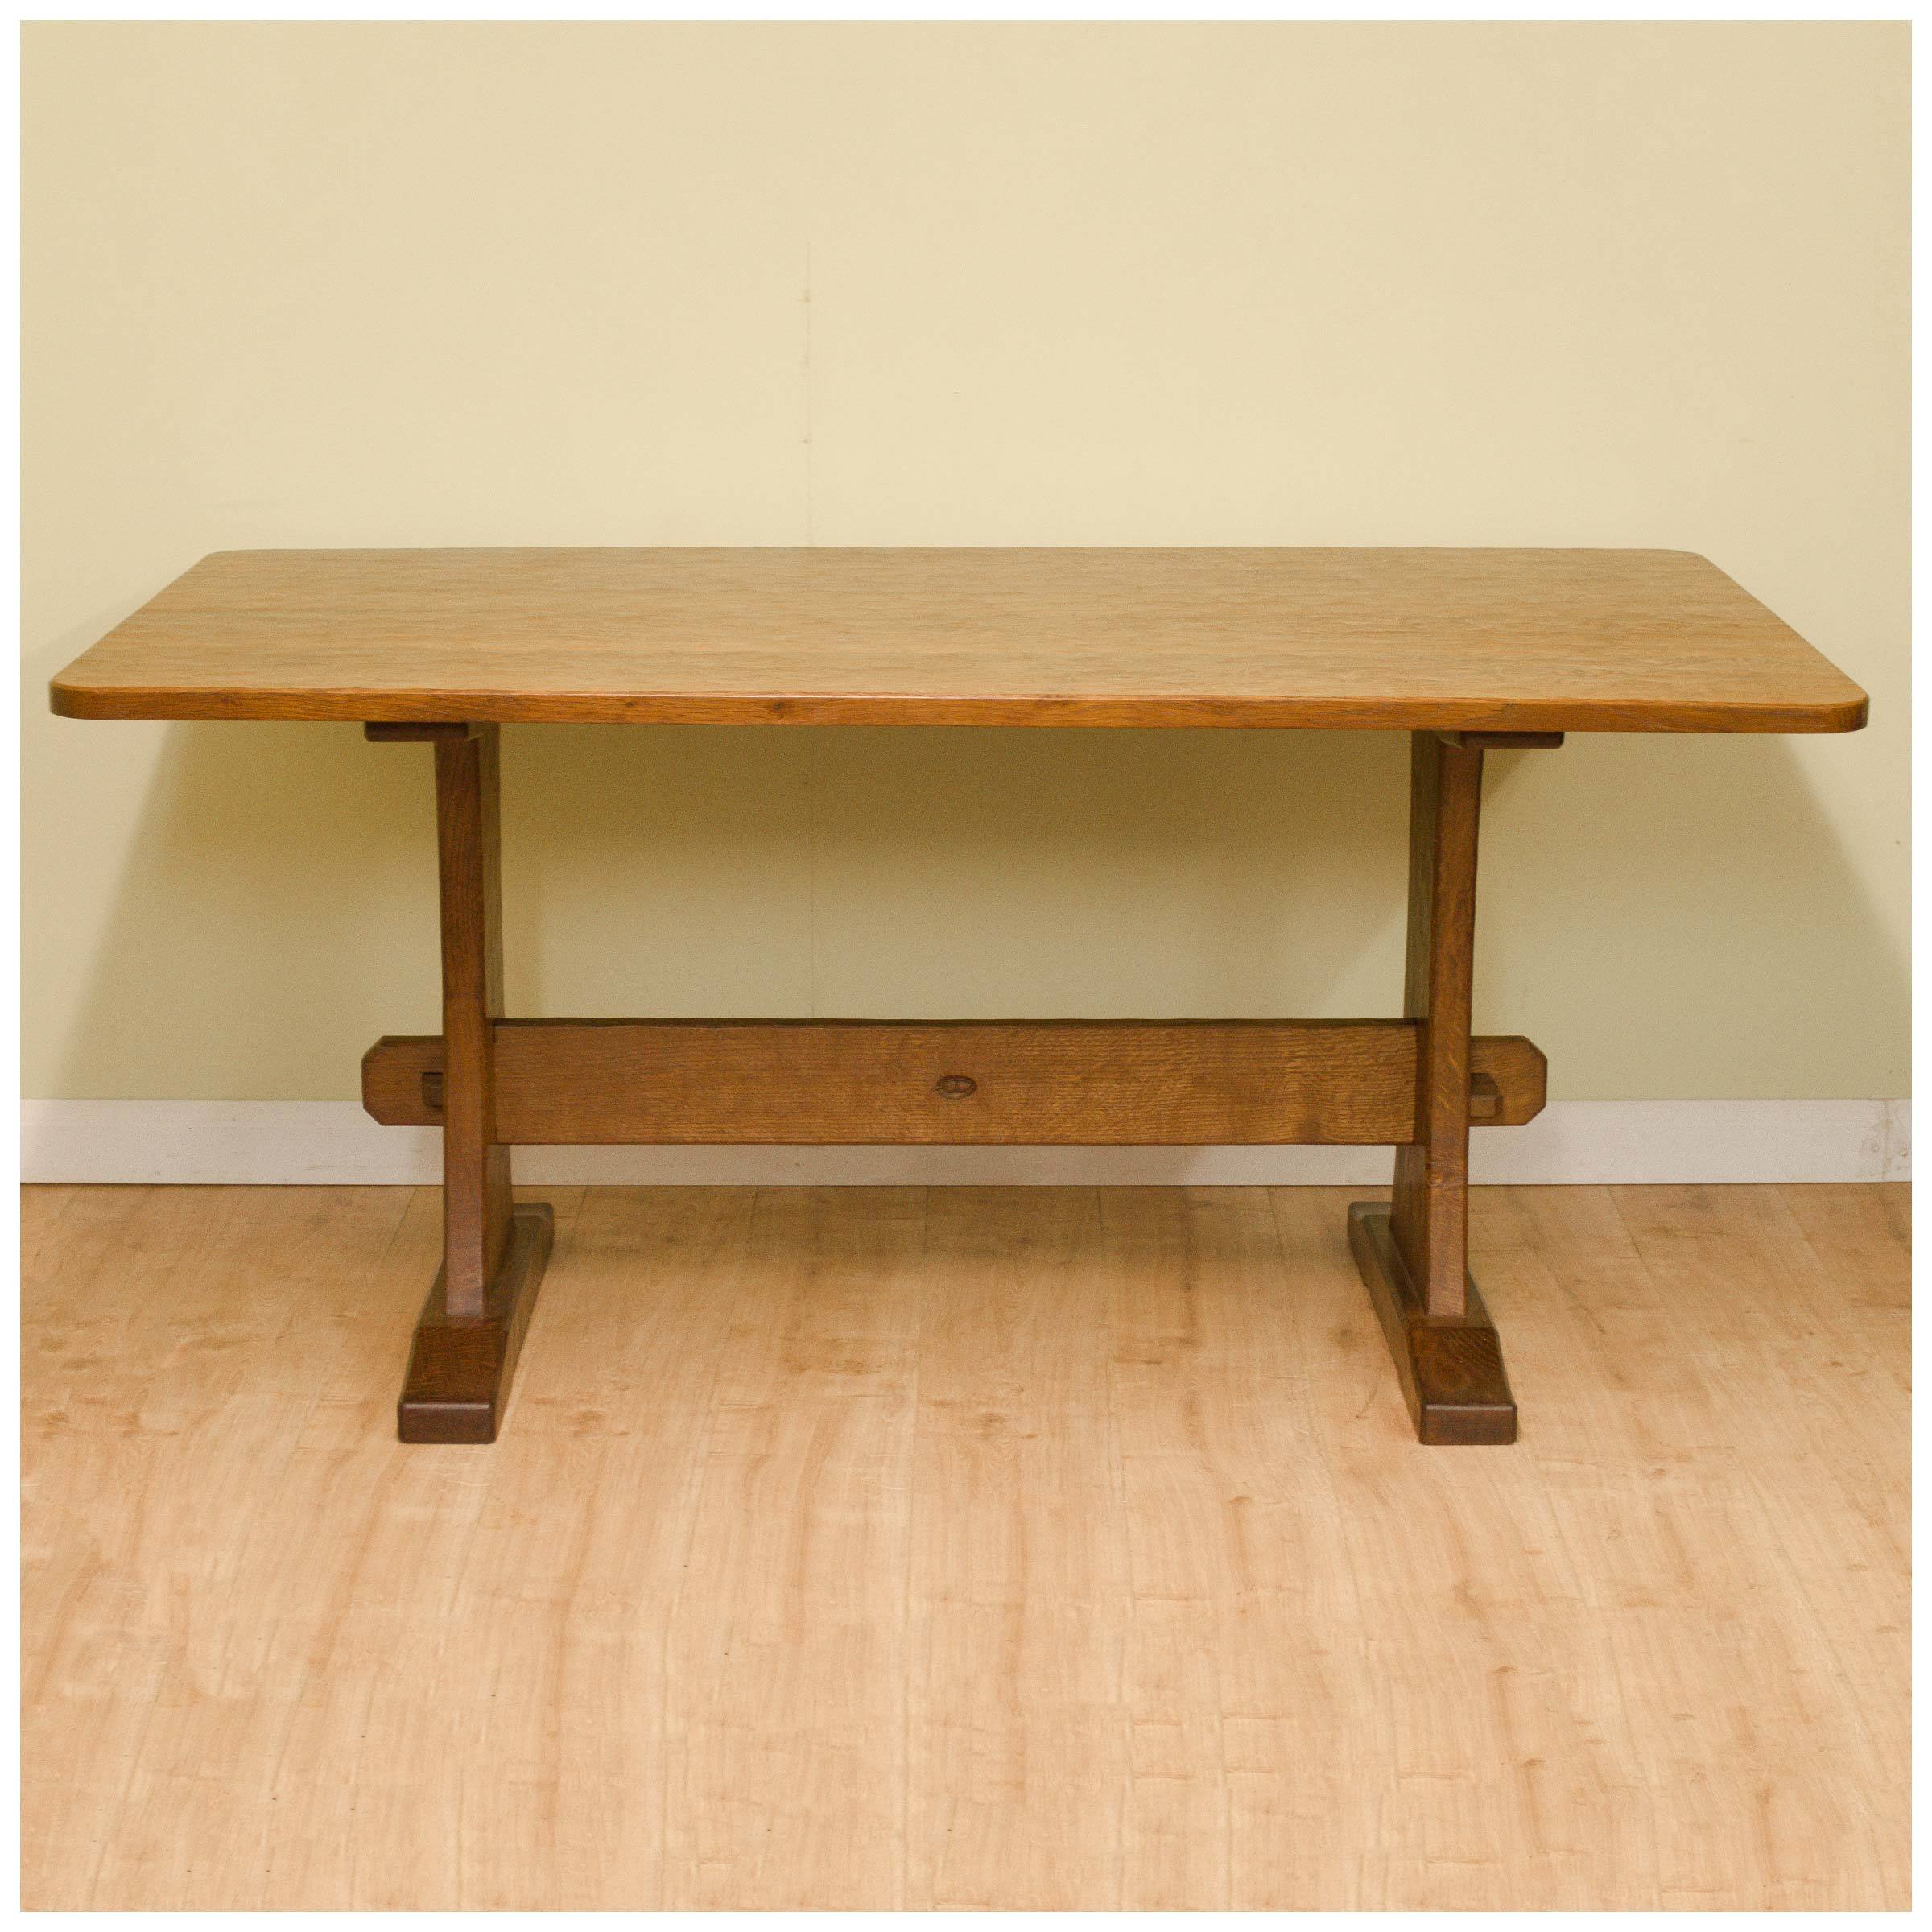 adzed-yorkshire-school-oak-rectangular-dining-table-by-alan-acornman-grainger-acorn-industries-b0020141h.jpg